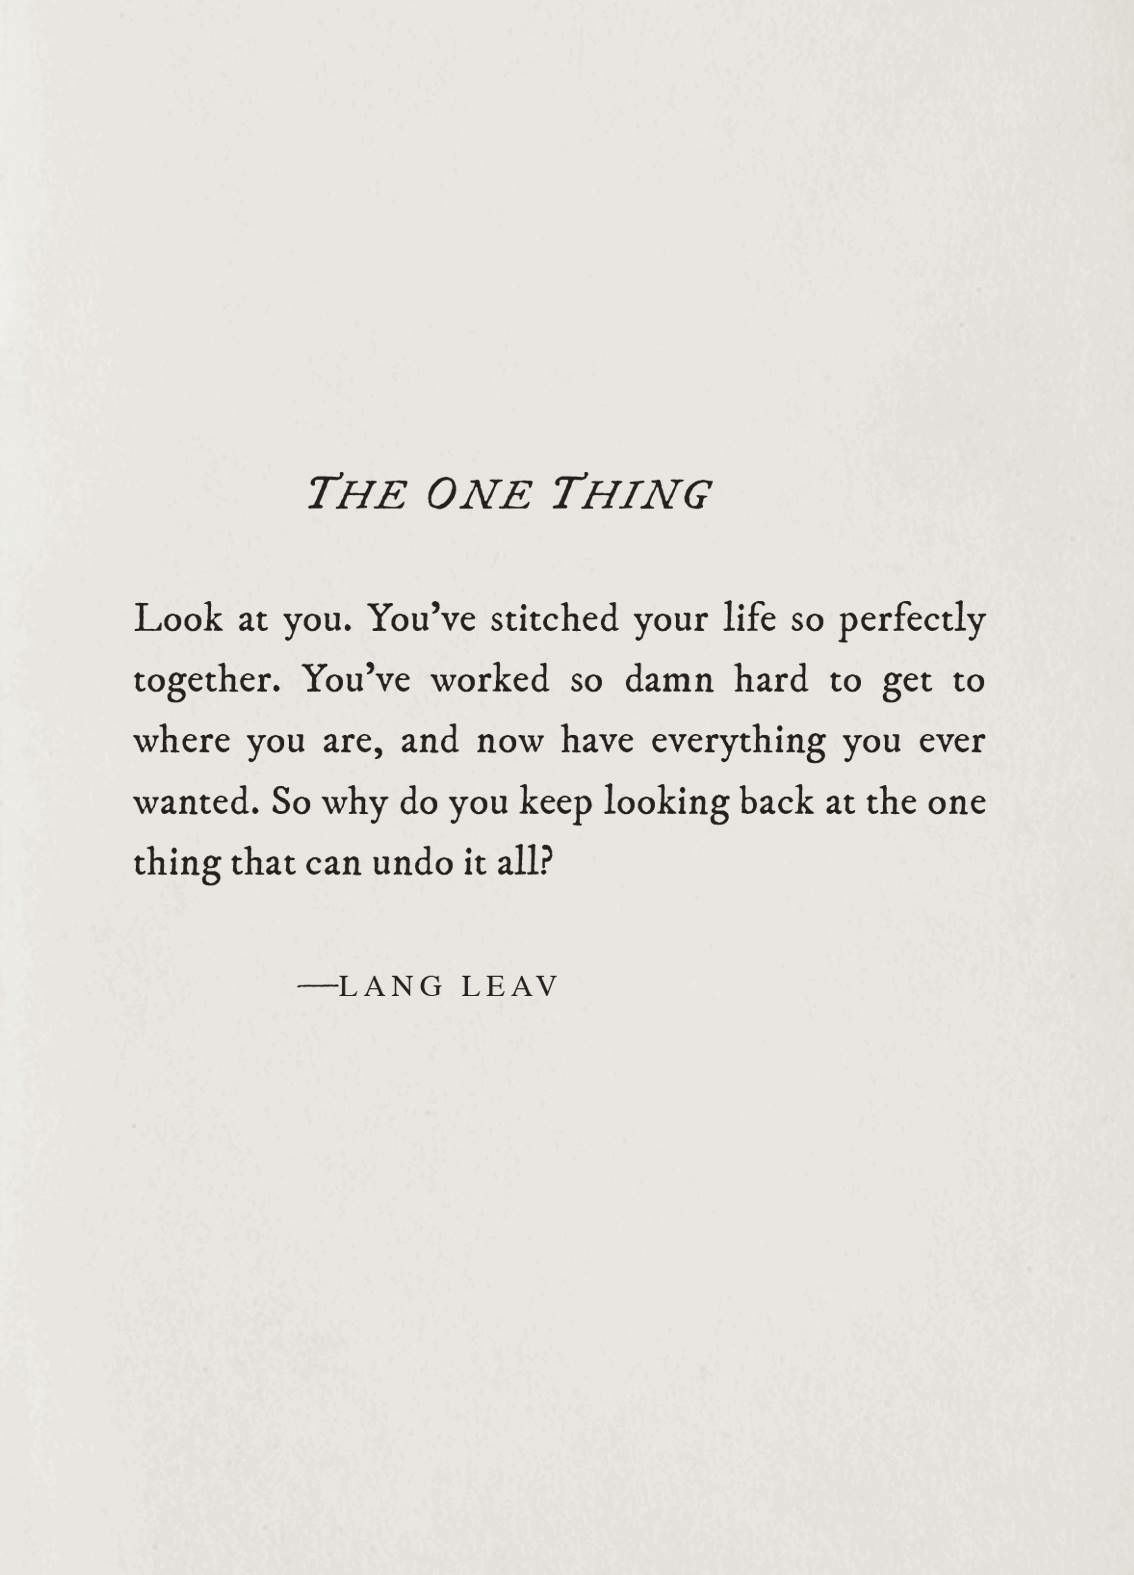 The One Thing~Lang Leav (With images)   Lang leav quotes ... Lang Leav Quotes On Friendship And Love